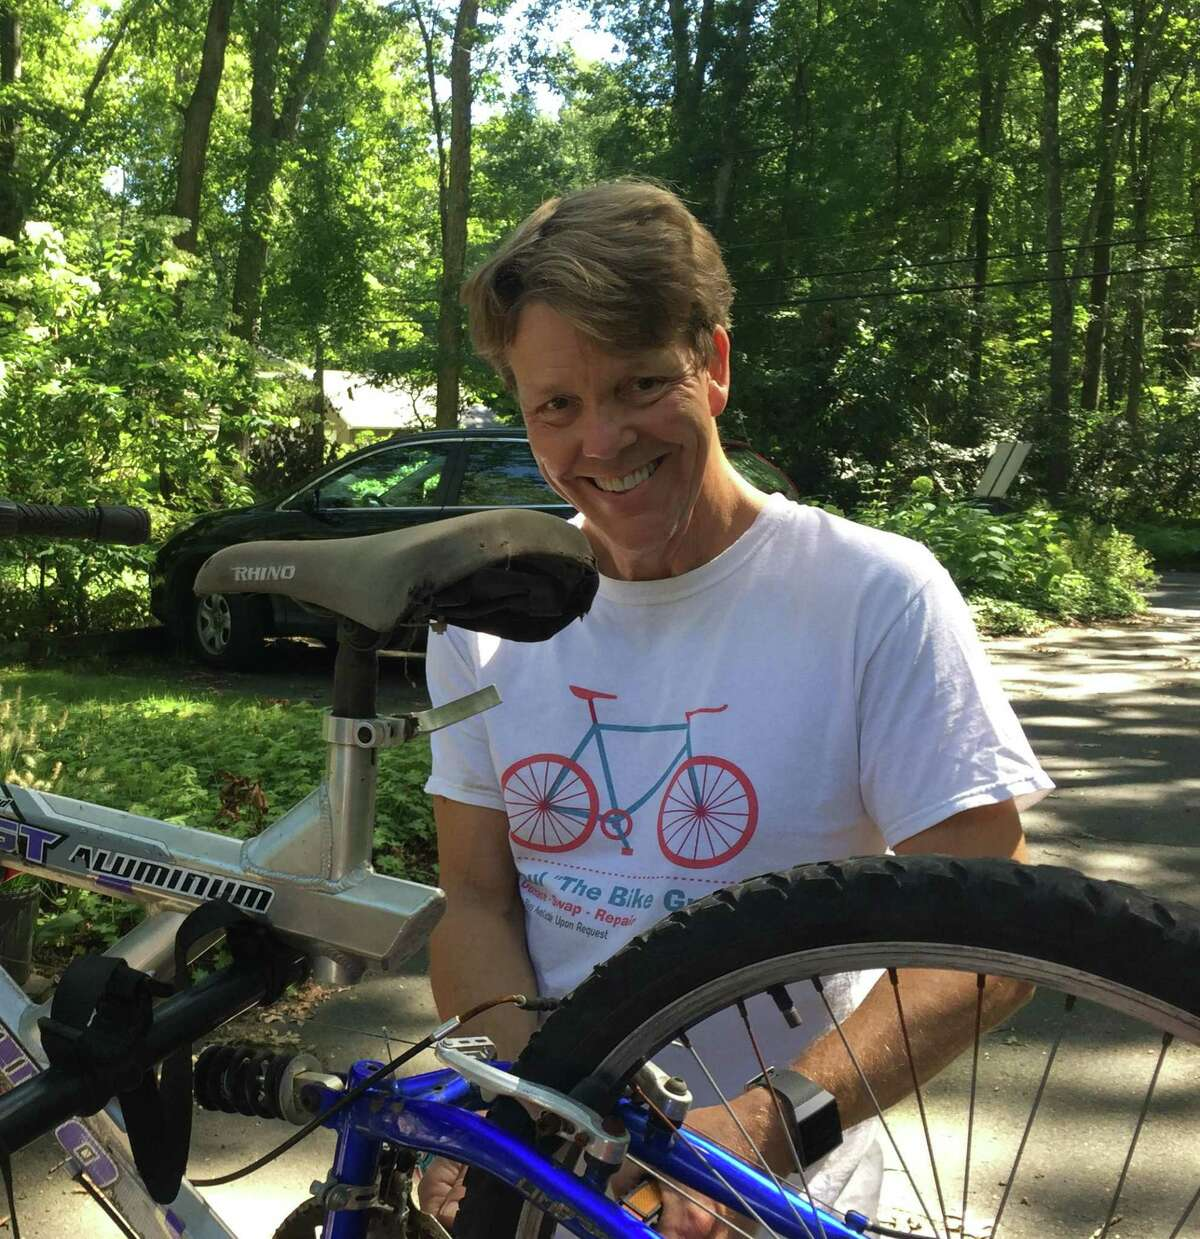 Clinton residents Paul Egan and his wife, Liz, are raising money for cancer research and treatment by participating in the Closer to Free Ride organized by Smilow Cancer Hospital and Yale Cancer Center.